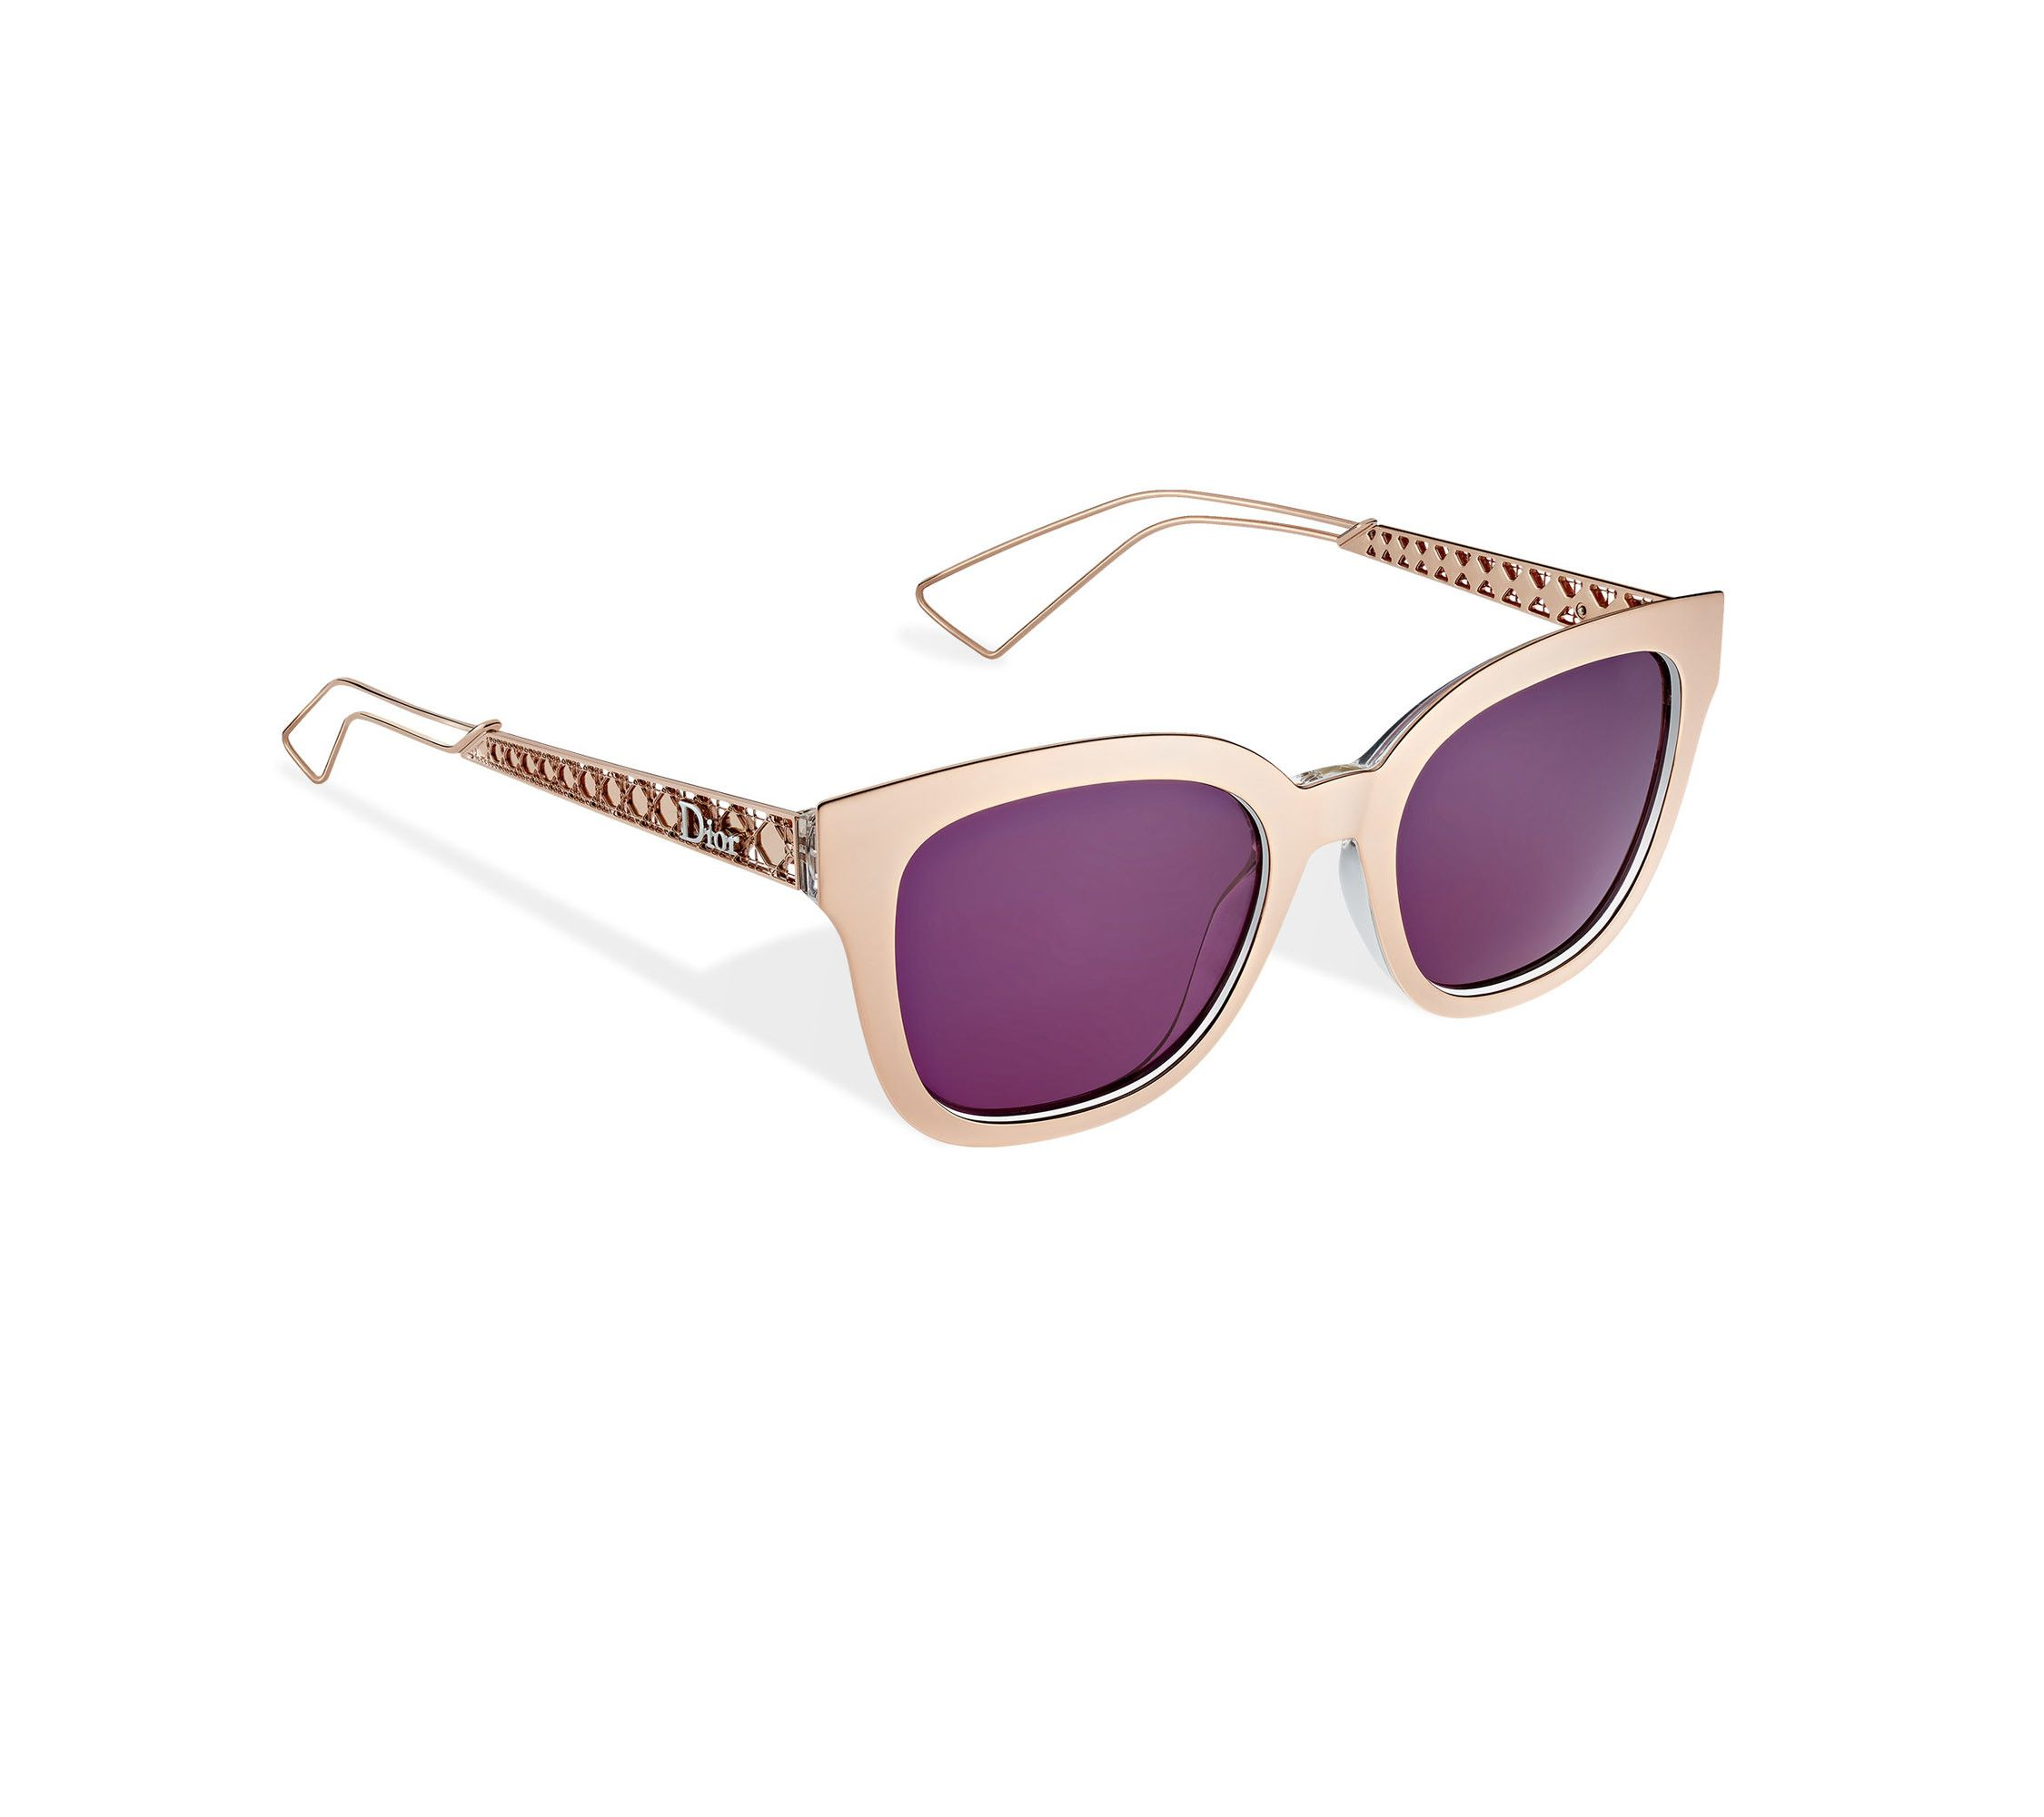 706e6af1267dd Discover ideas about Dior Reflected Sunglasses. Prism effect